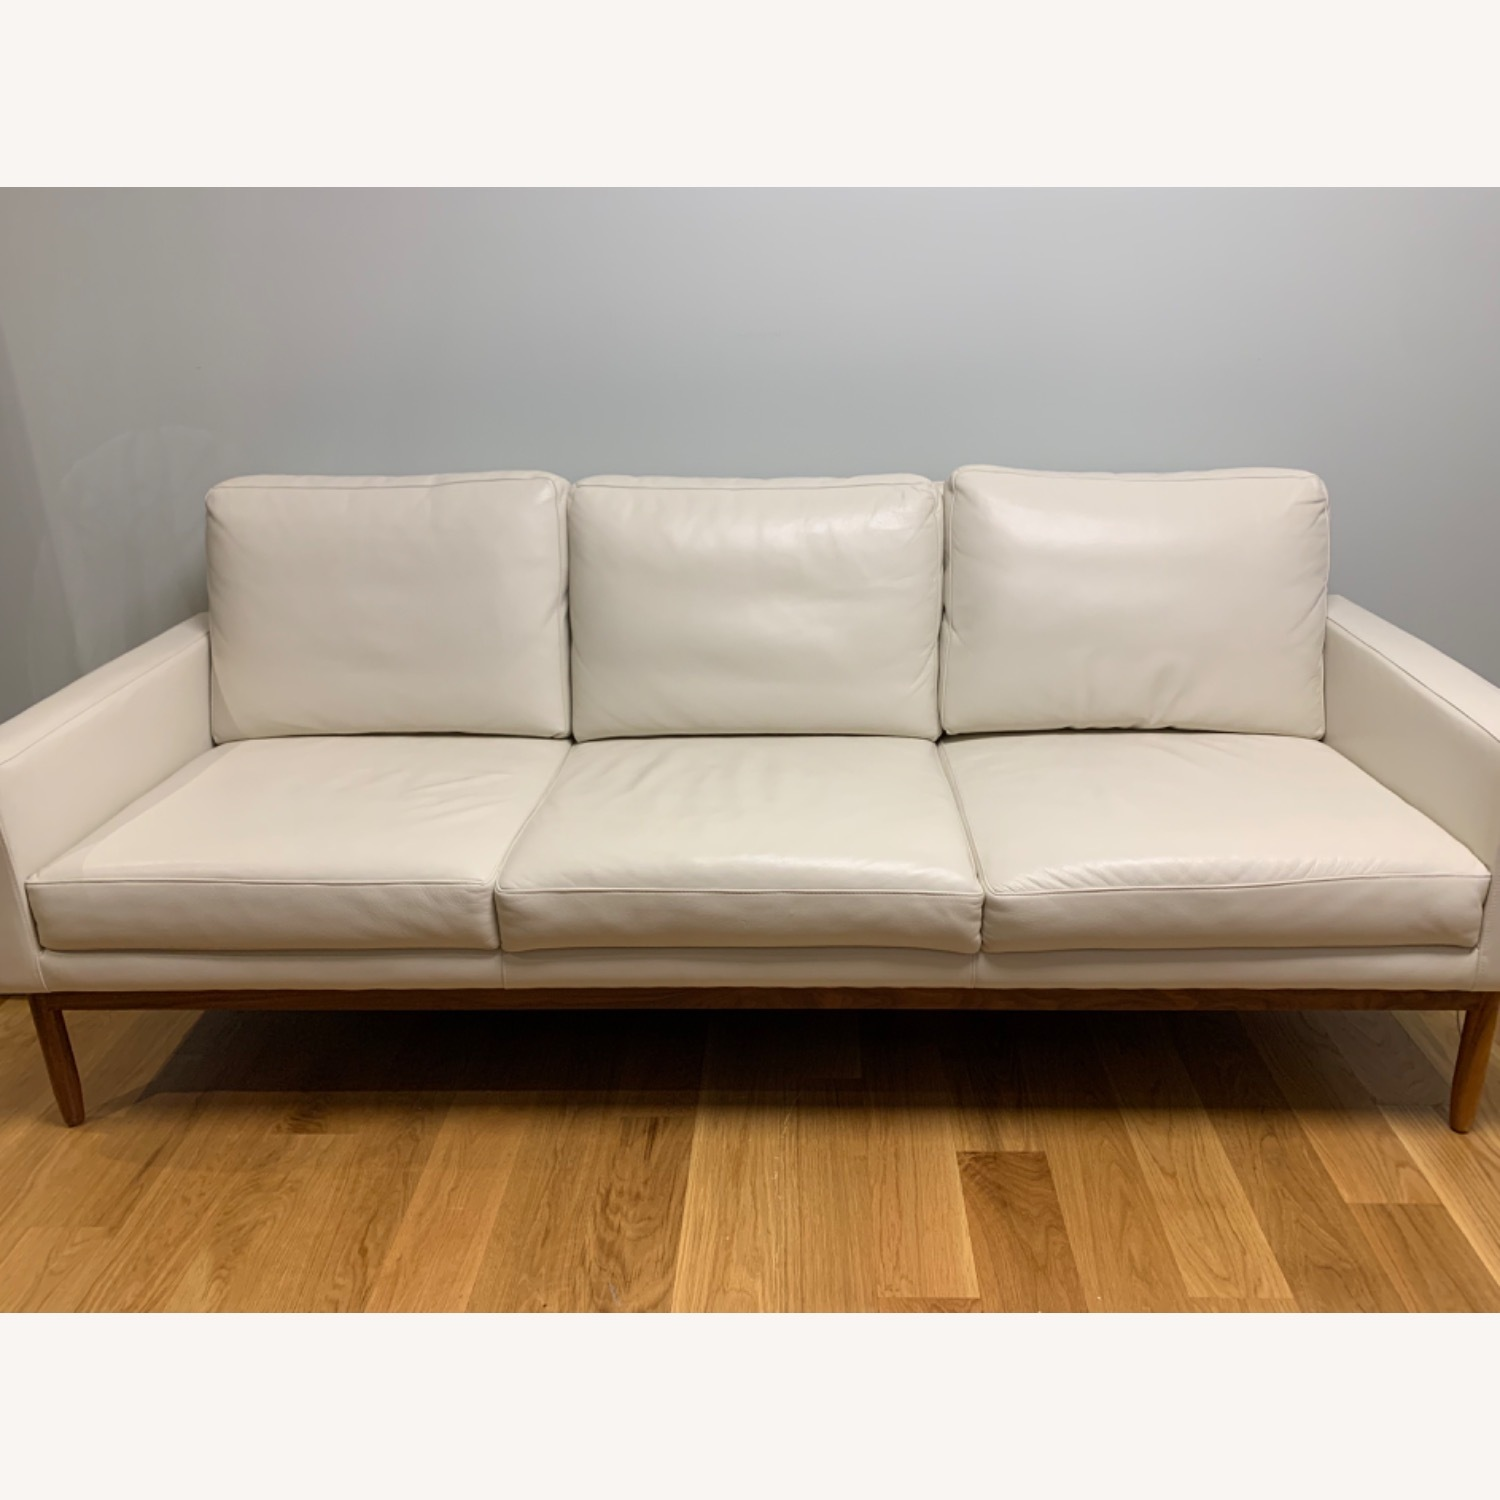 Design Within Reach Leather Raleigh Sofa - image-0